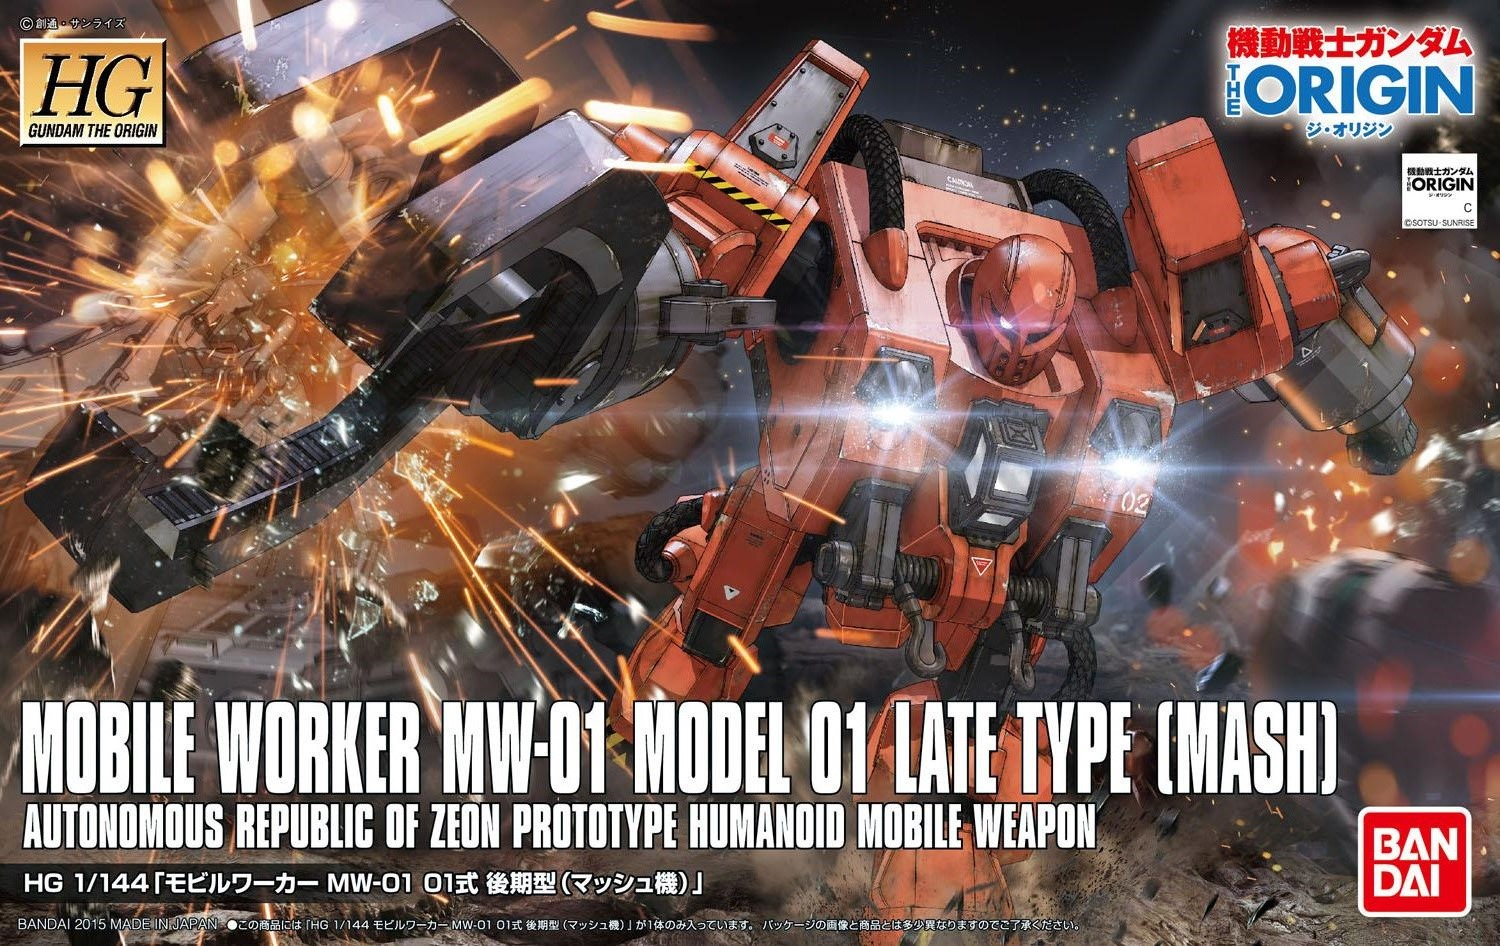 HG Gundam The Origin MOBILE WORKER MW-01 MODEL 01 LATE TYPE [MASH]: Official Box Art + Many Images, Info Release